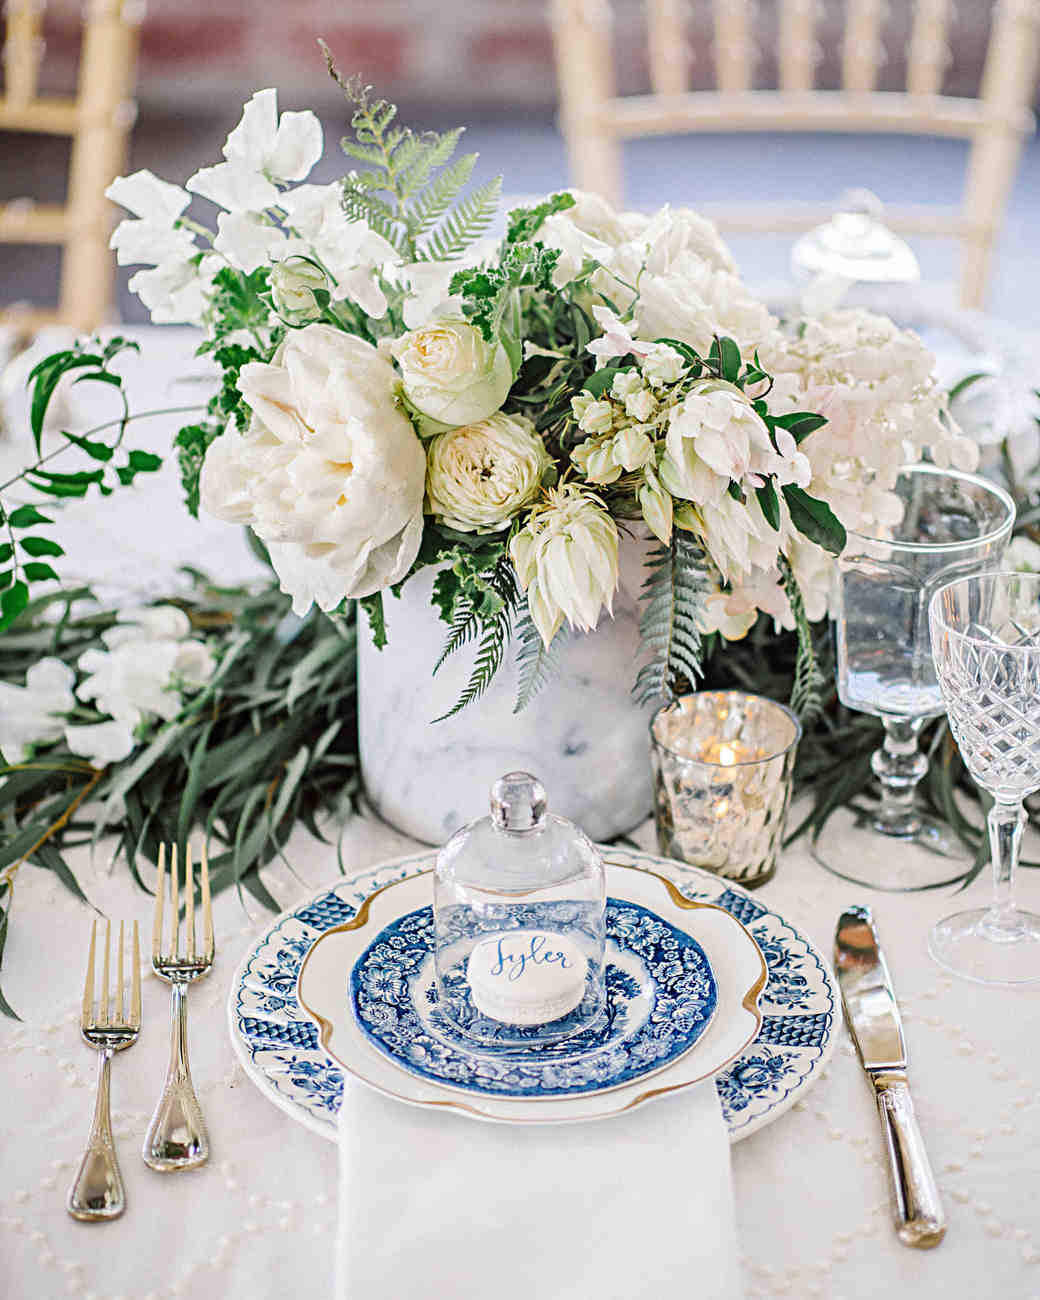 Wedding Tables Ideas: 79 White Wedding Centerpieces